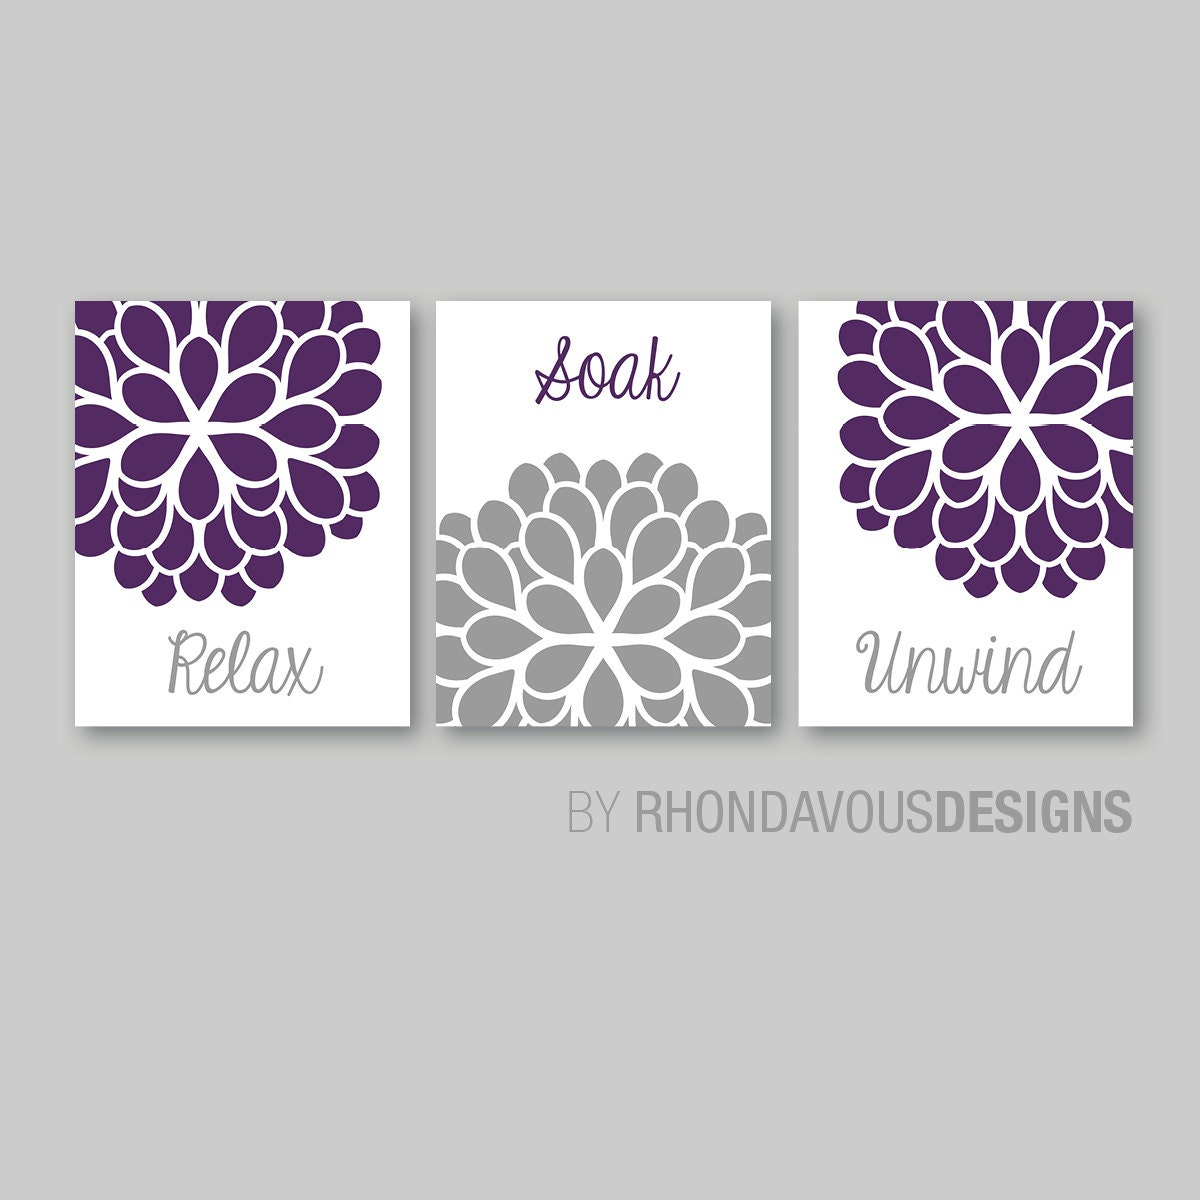 Bathroom decor bathroom art relax soak unwind flower for Bathroom decor purple